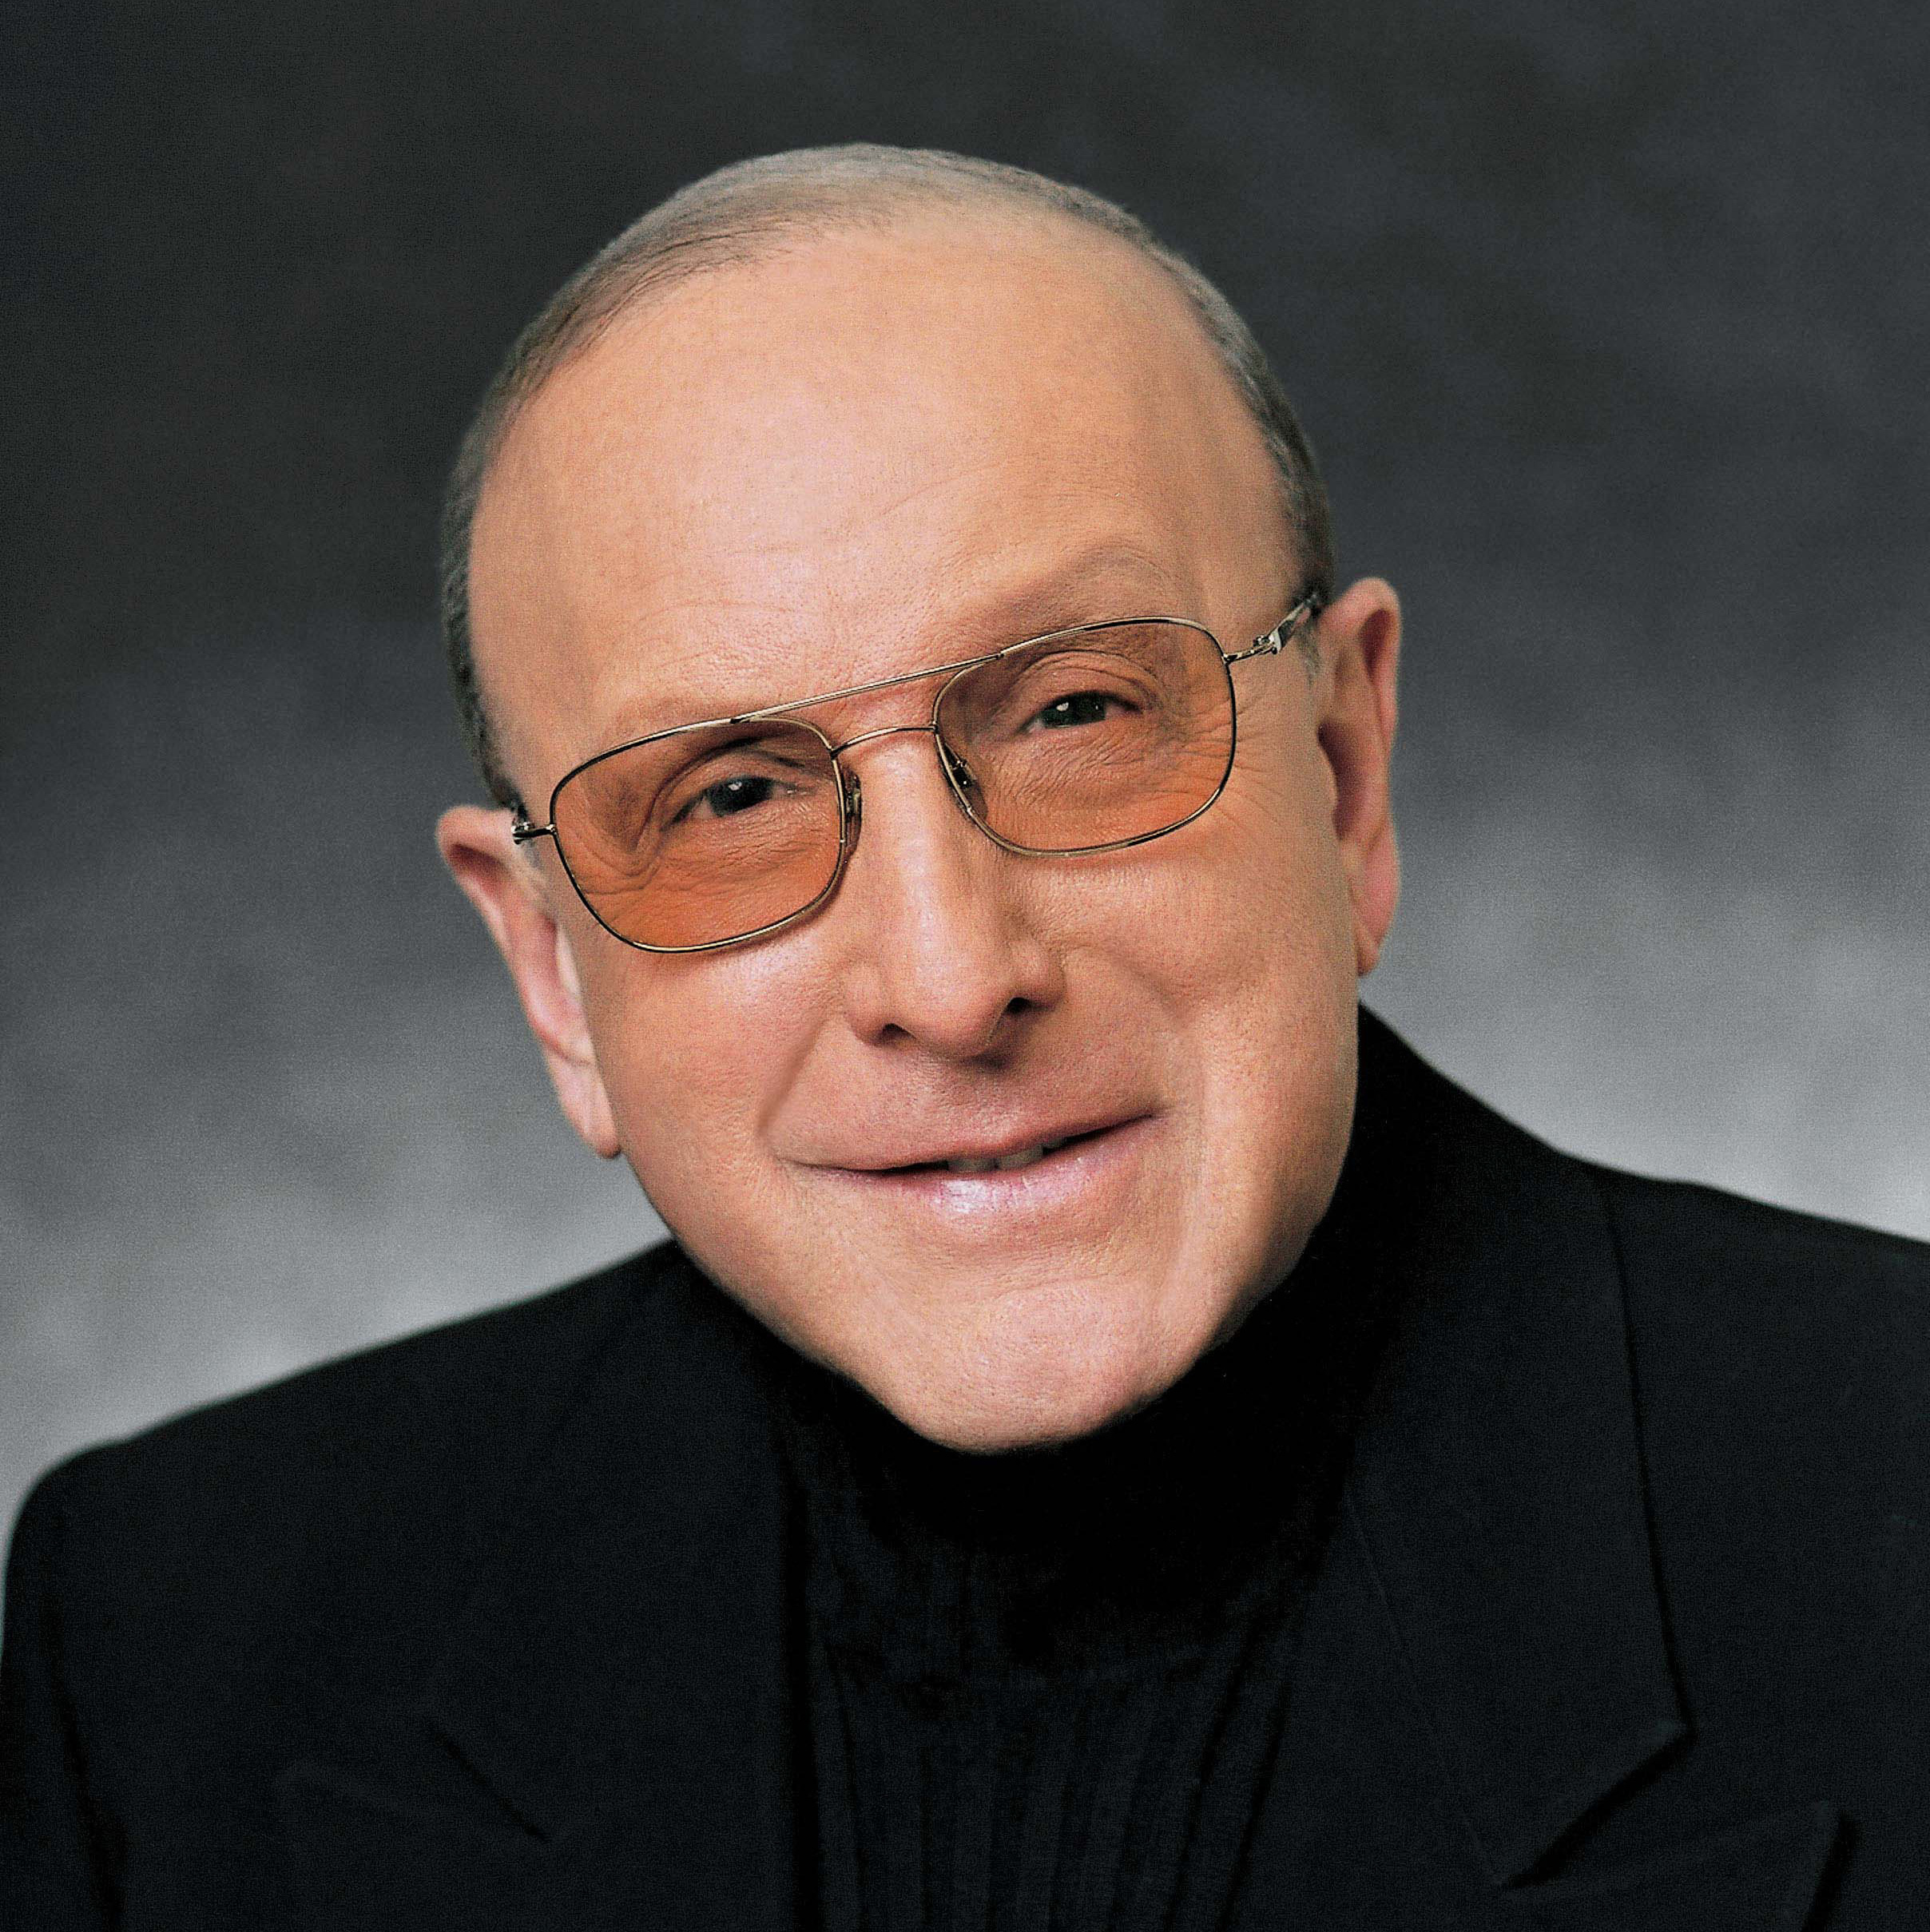 During his 40-year career in the music industry, legendary record producer Clive Davis has worked with artists like Simon & Garfunkel, Aretha Franklin and Kelly Clarkson.